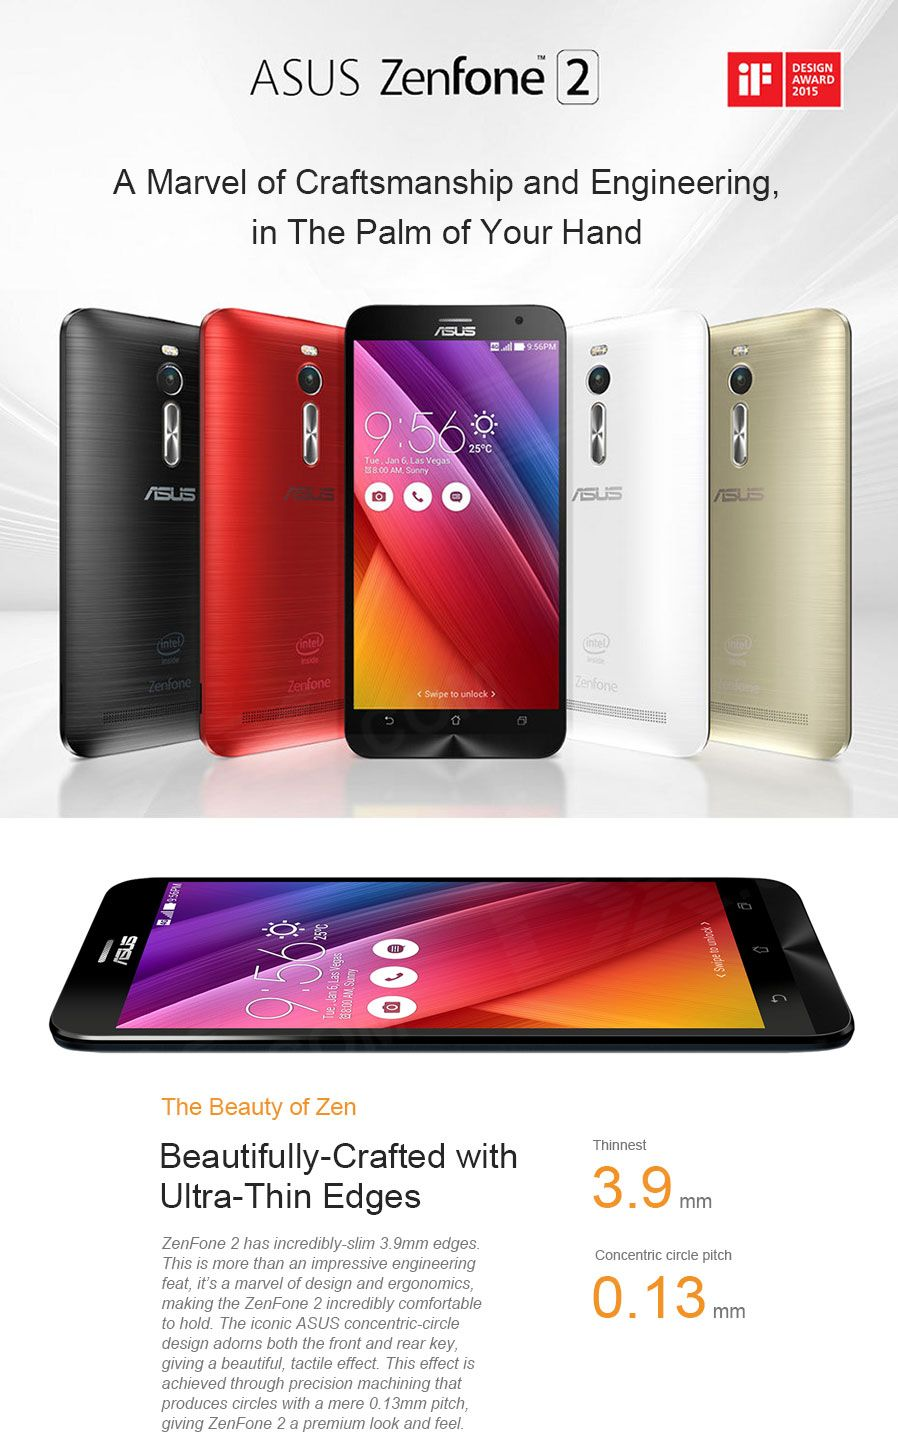 "ASUS ZenFone 2 ZE551ML Intel Z3560 Android 5.0 Quad-Core 4G LTE Phone w/ 5.5""IPS,NFC,OTG-Silver - Free Shipping - DealExtreme"